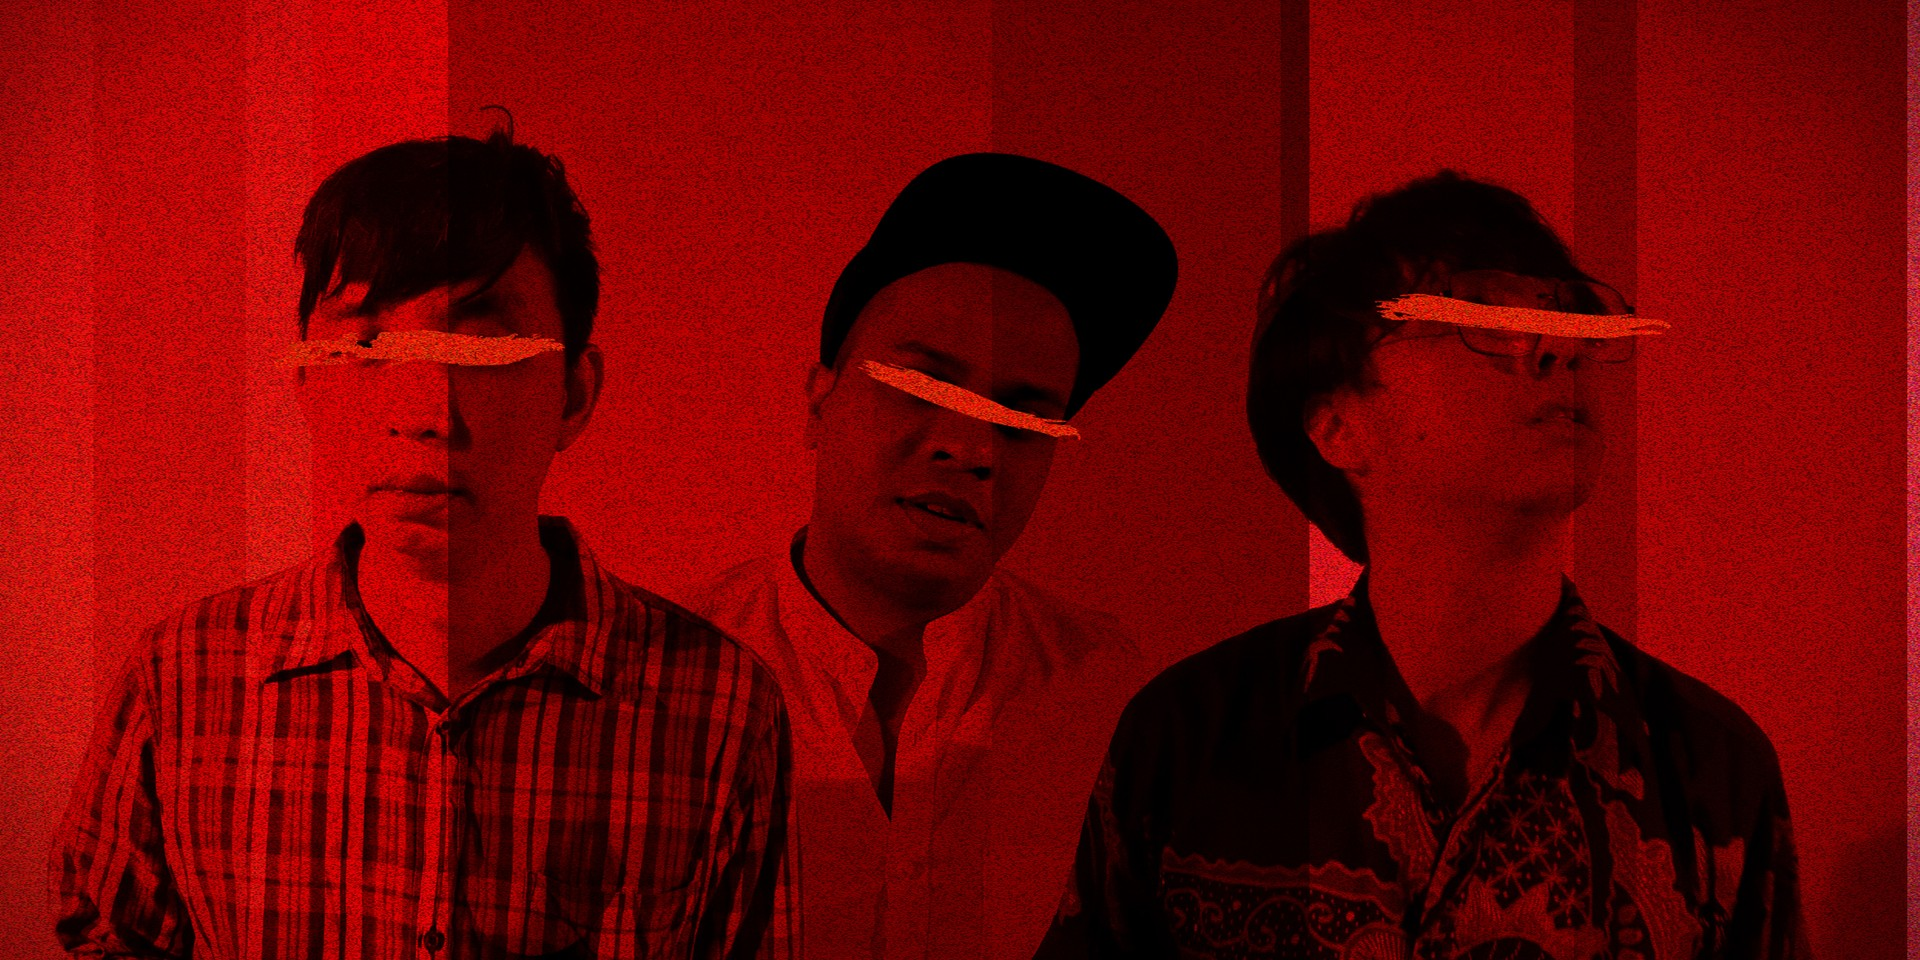 Singaporean garage rock trio BAD DOD will open for The Beths at upcoming Singapore show